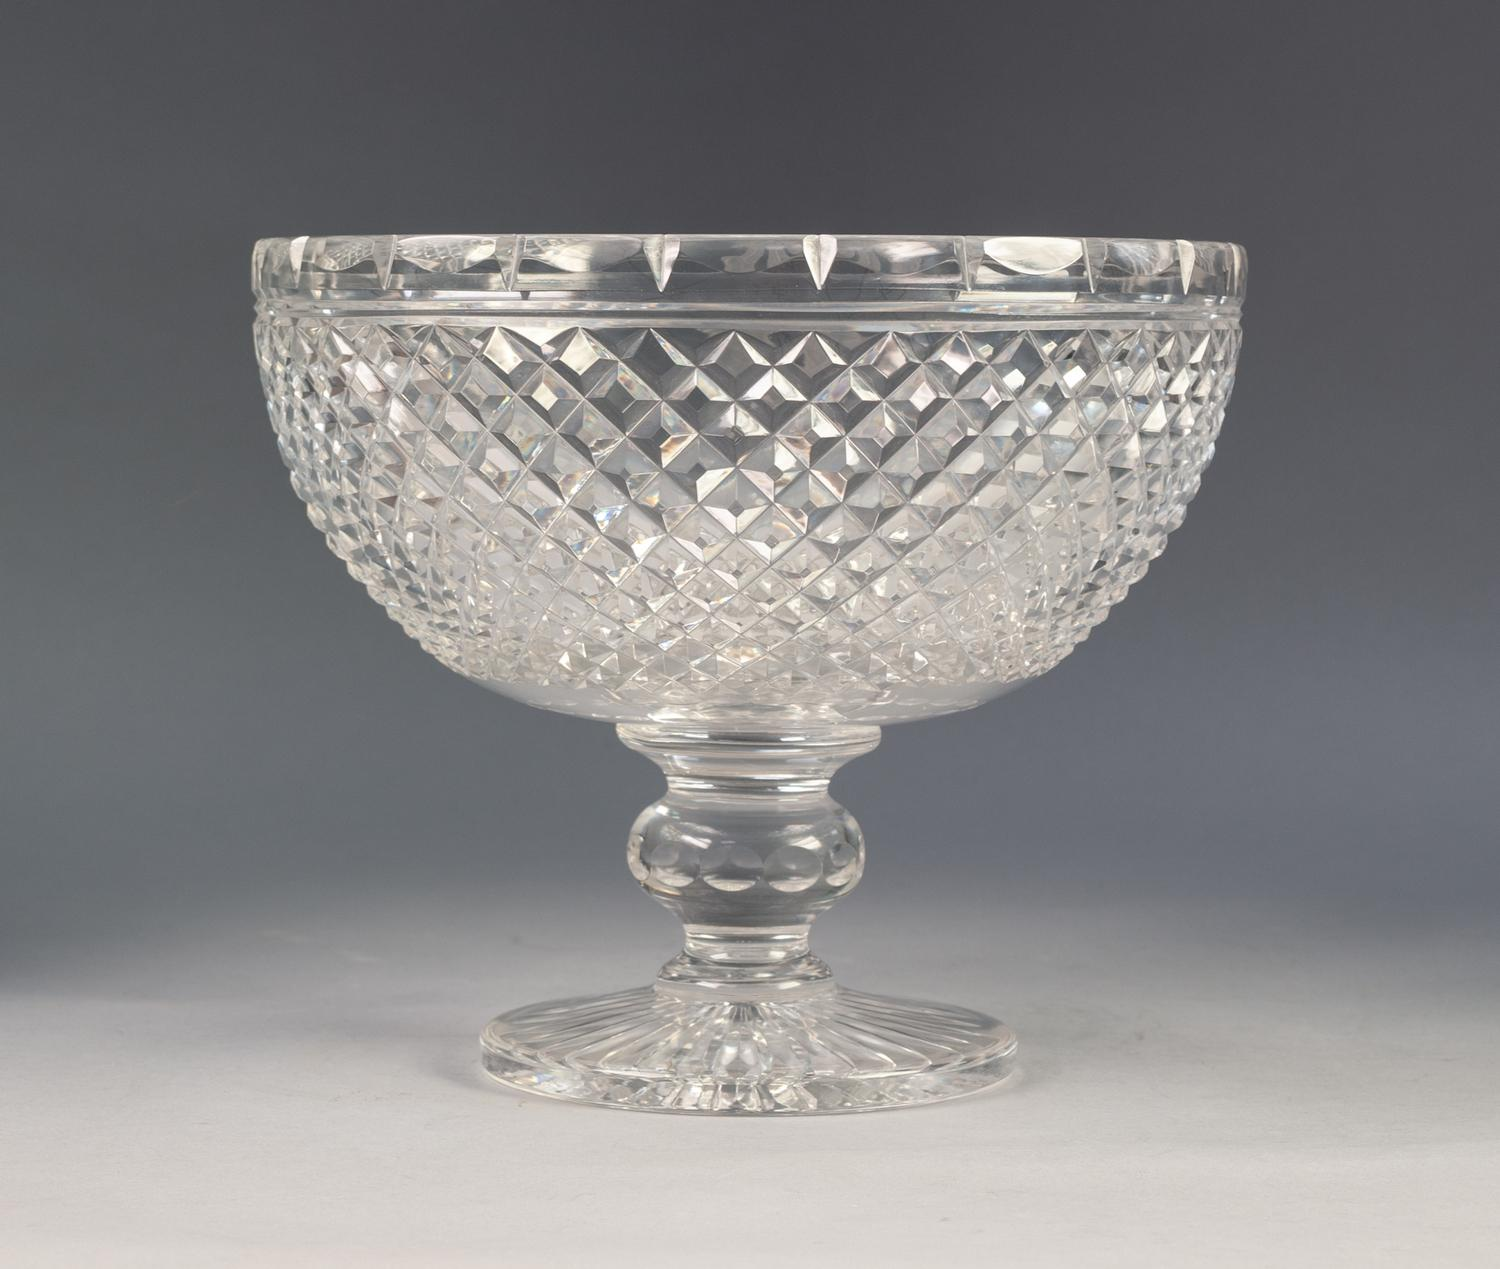 Lot 203 - BOXED STUART CRYSTAL LIMITED EDITION, CHARLES AND DIANA, ROYAL COMMEMORATIVE LARGE CHALICE, wheel